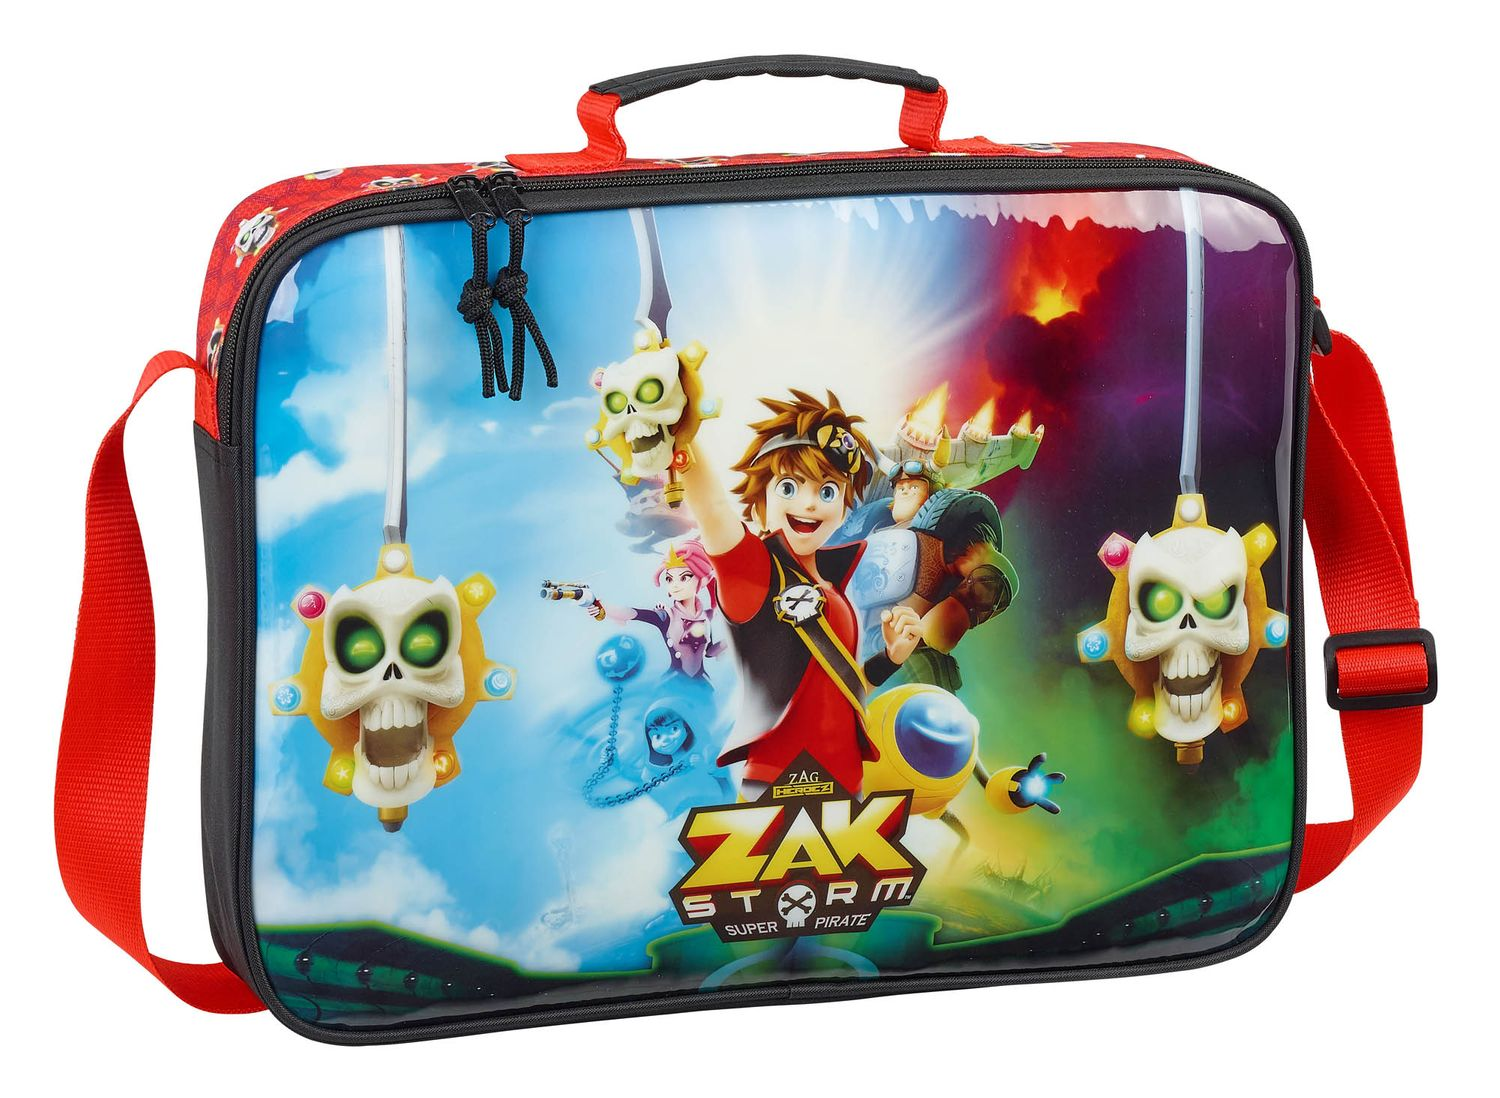 Zak Storm School Briefcase Messenger Shoulder Bag – image 1